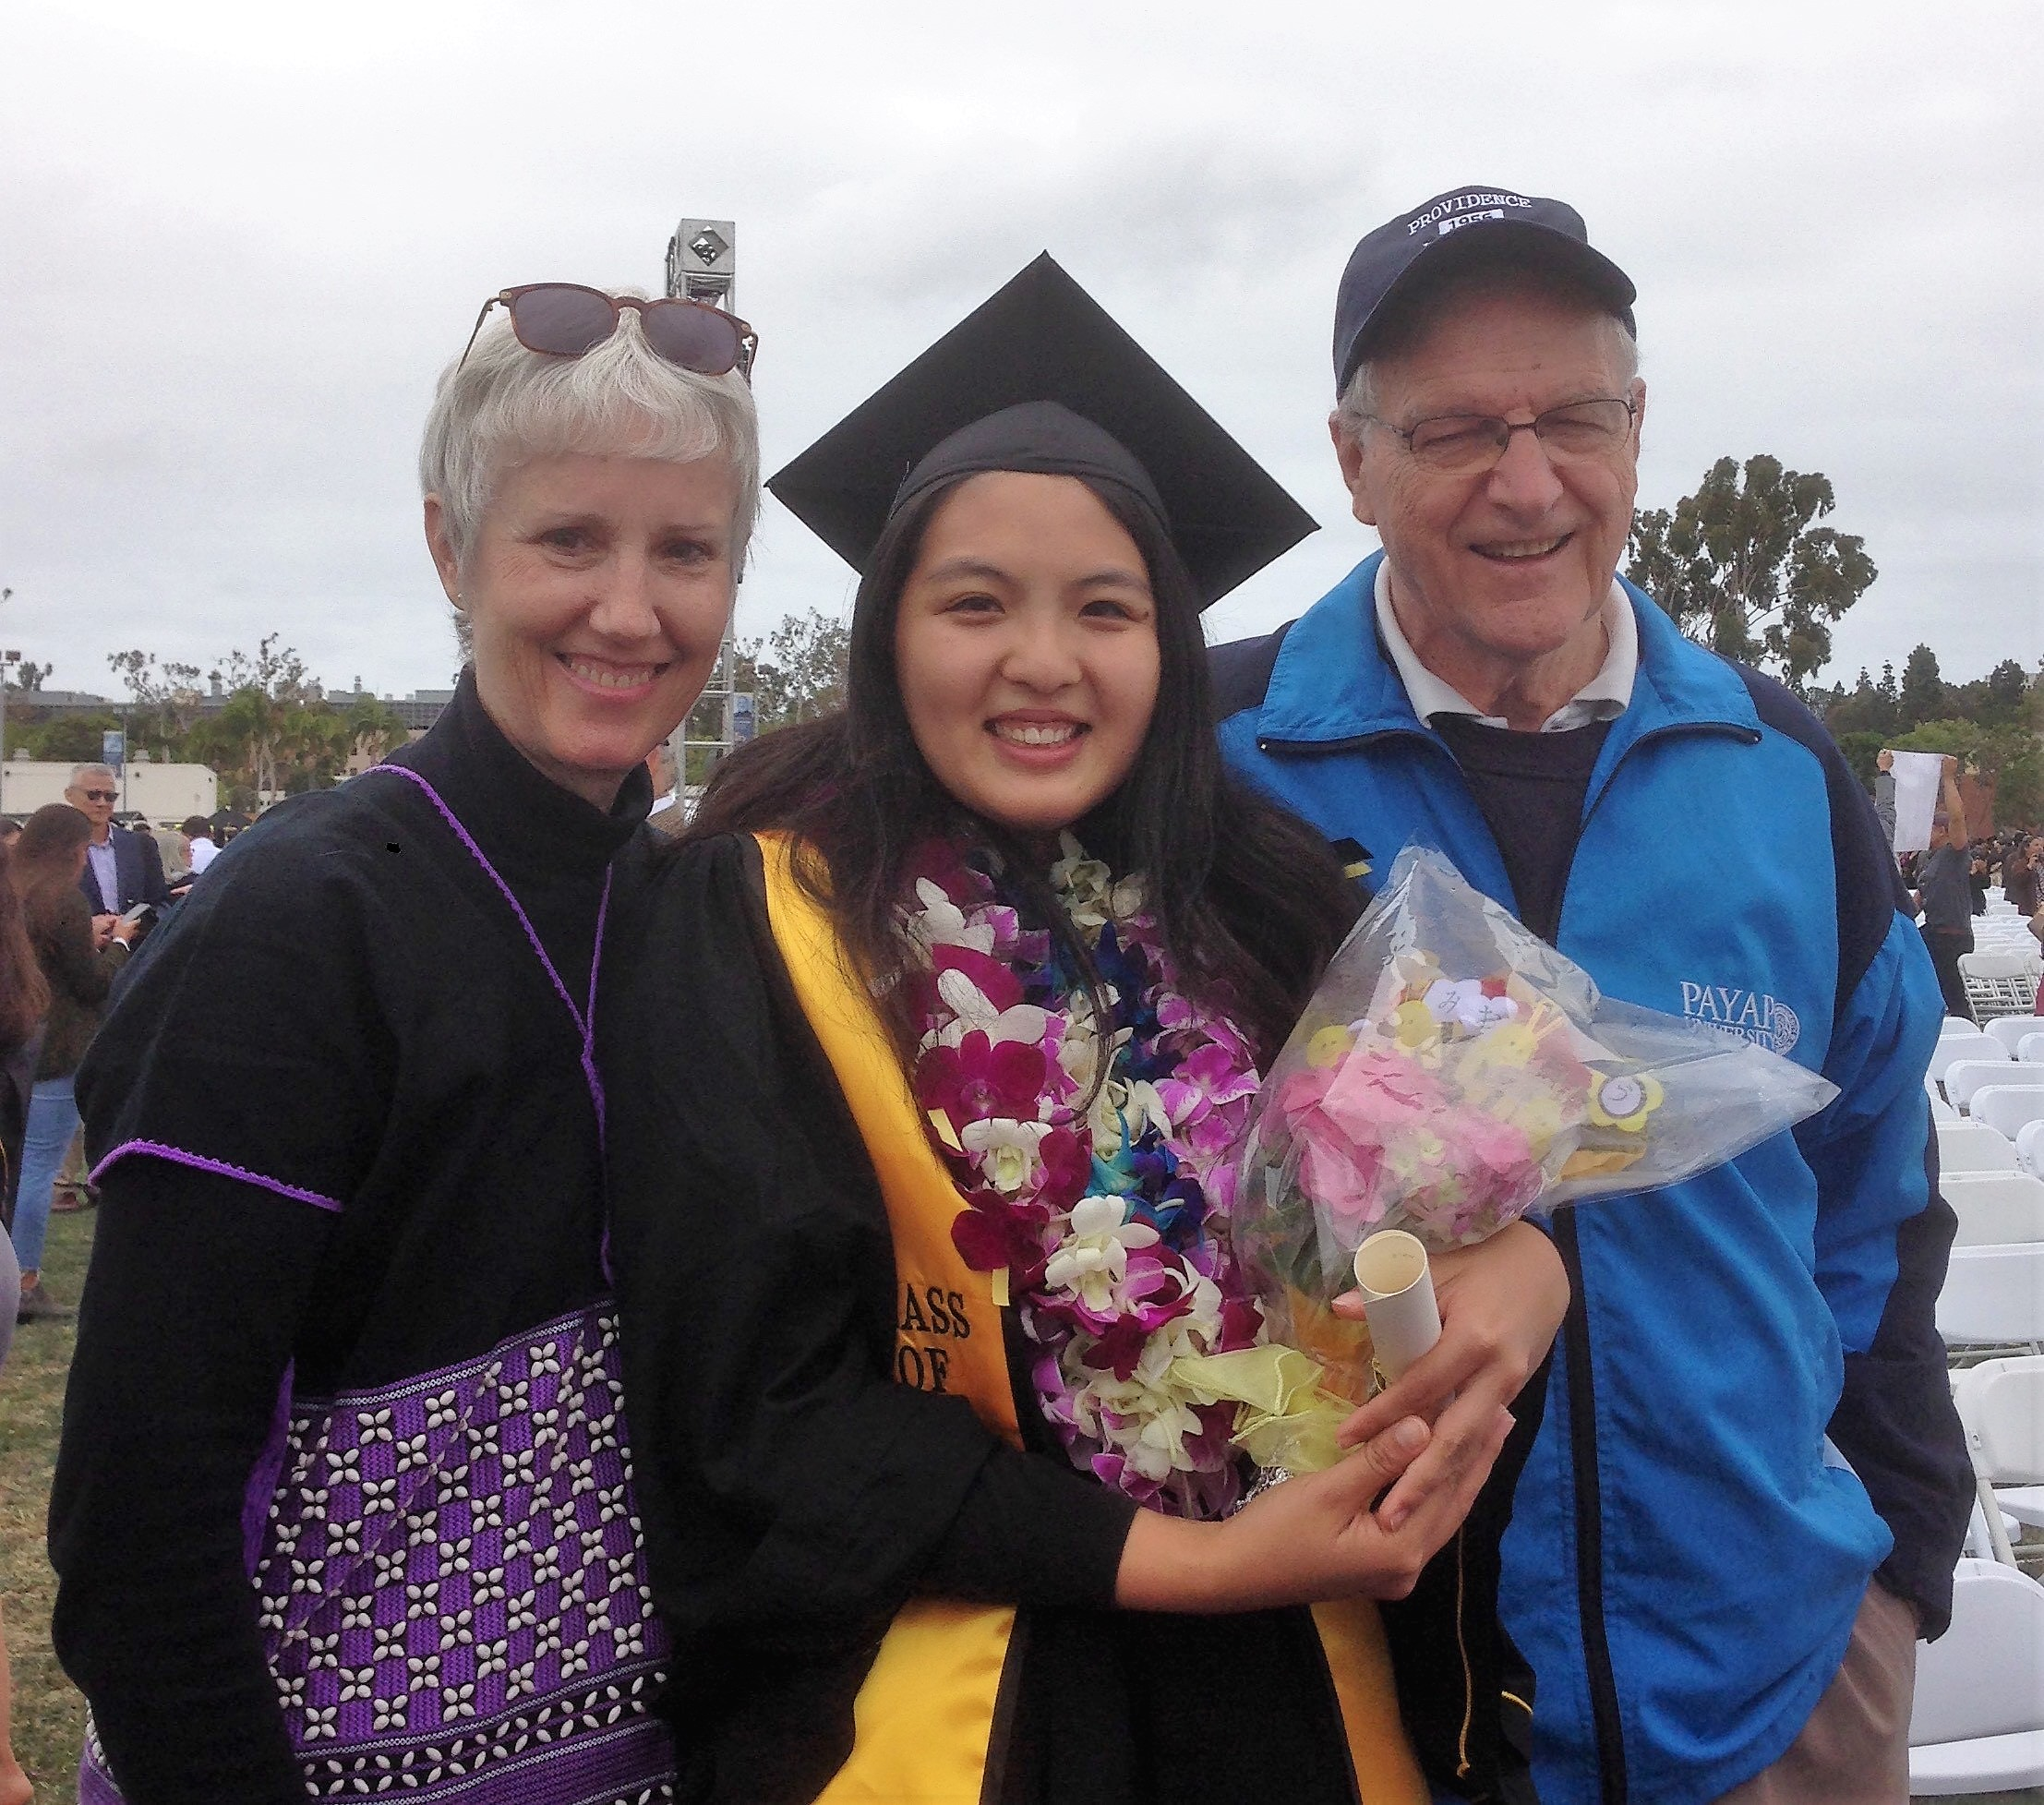 A highlight — celebrating the graduation of Naomi from Cal State Long Beach. She lived with us for a year so she could graduate from Chiang Mai International School.